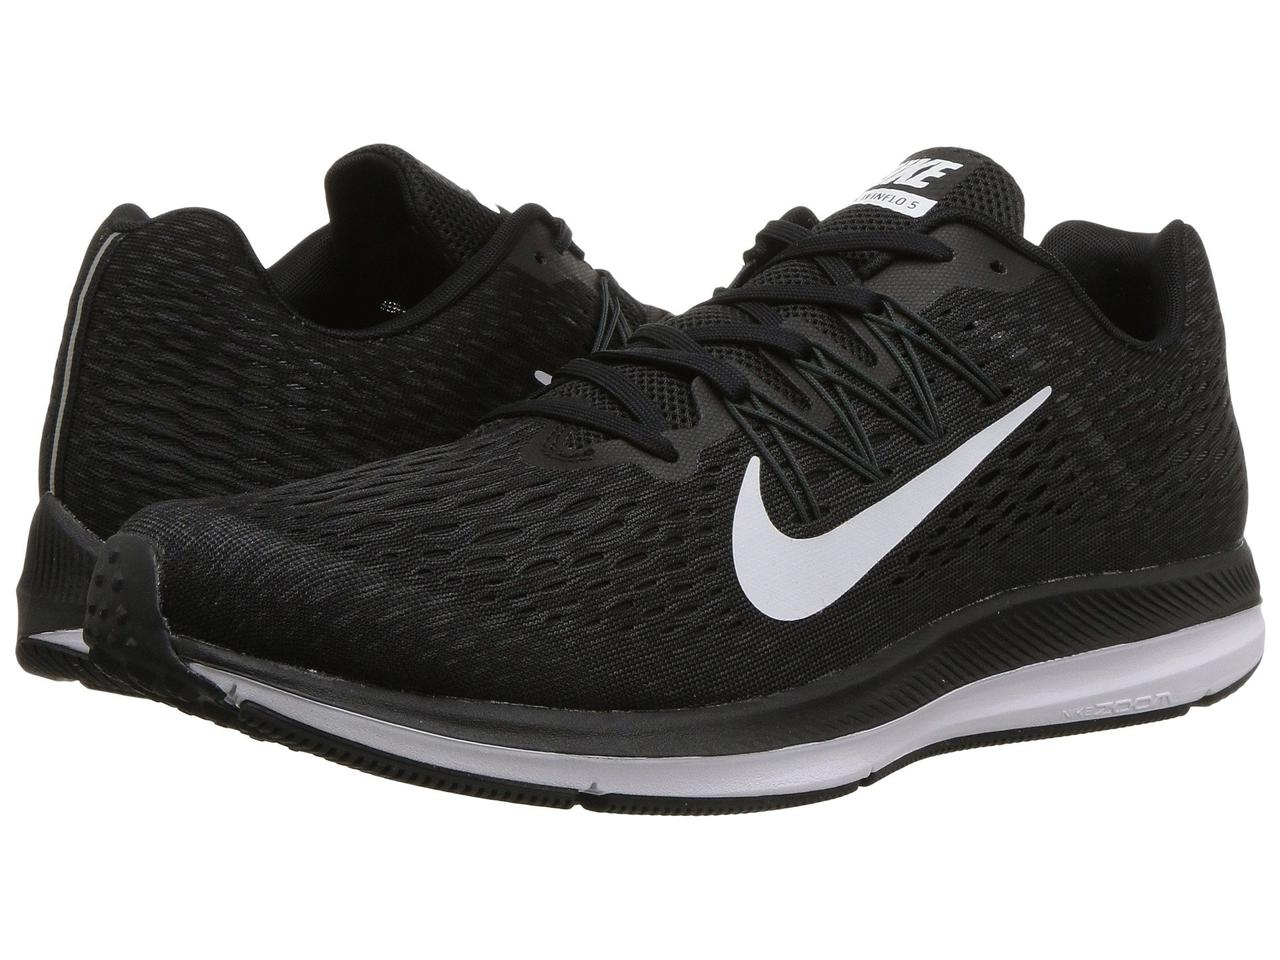 9e83b538 Кроссовки/Кеды (Оригинал) Nike Air Zoom Winflo 5 Black/White/Anthracite